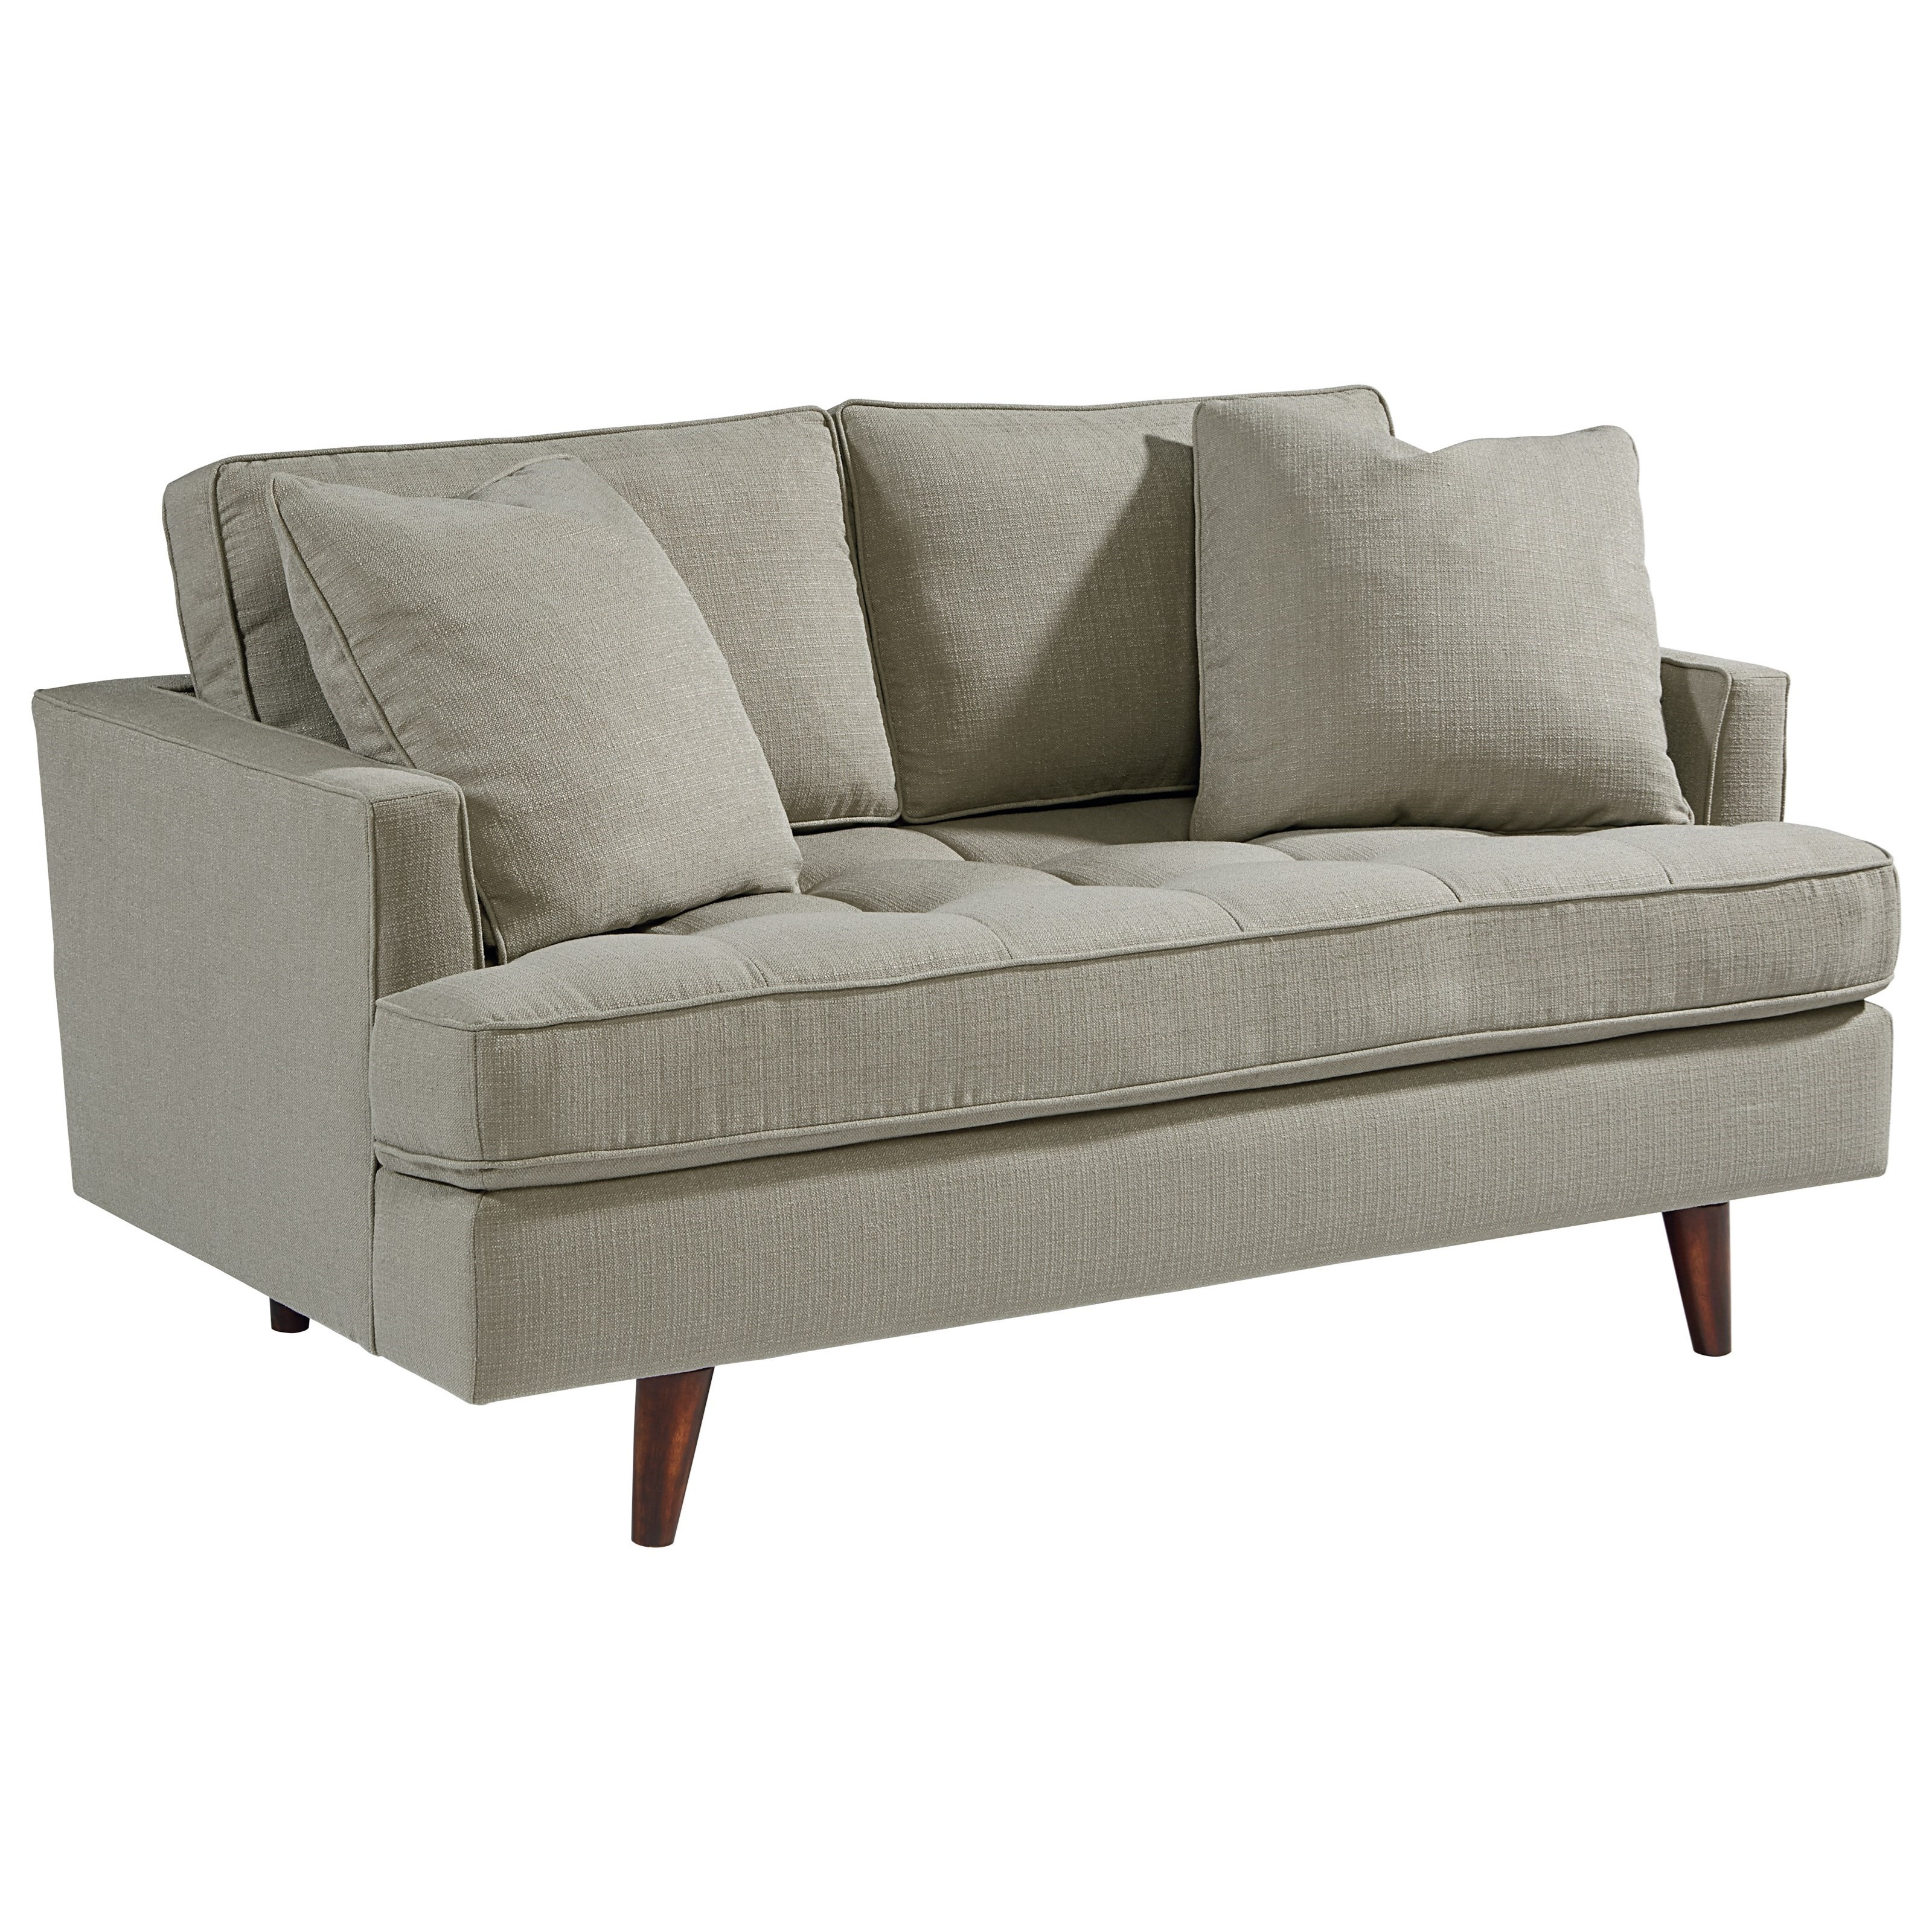 MCM Loveseat by Magnolia Home by Joanna Gaines at Fashion Furniture